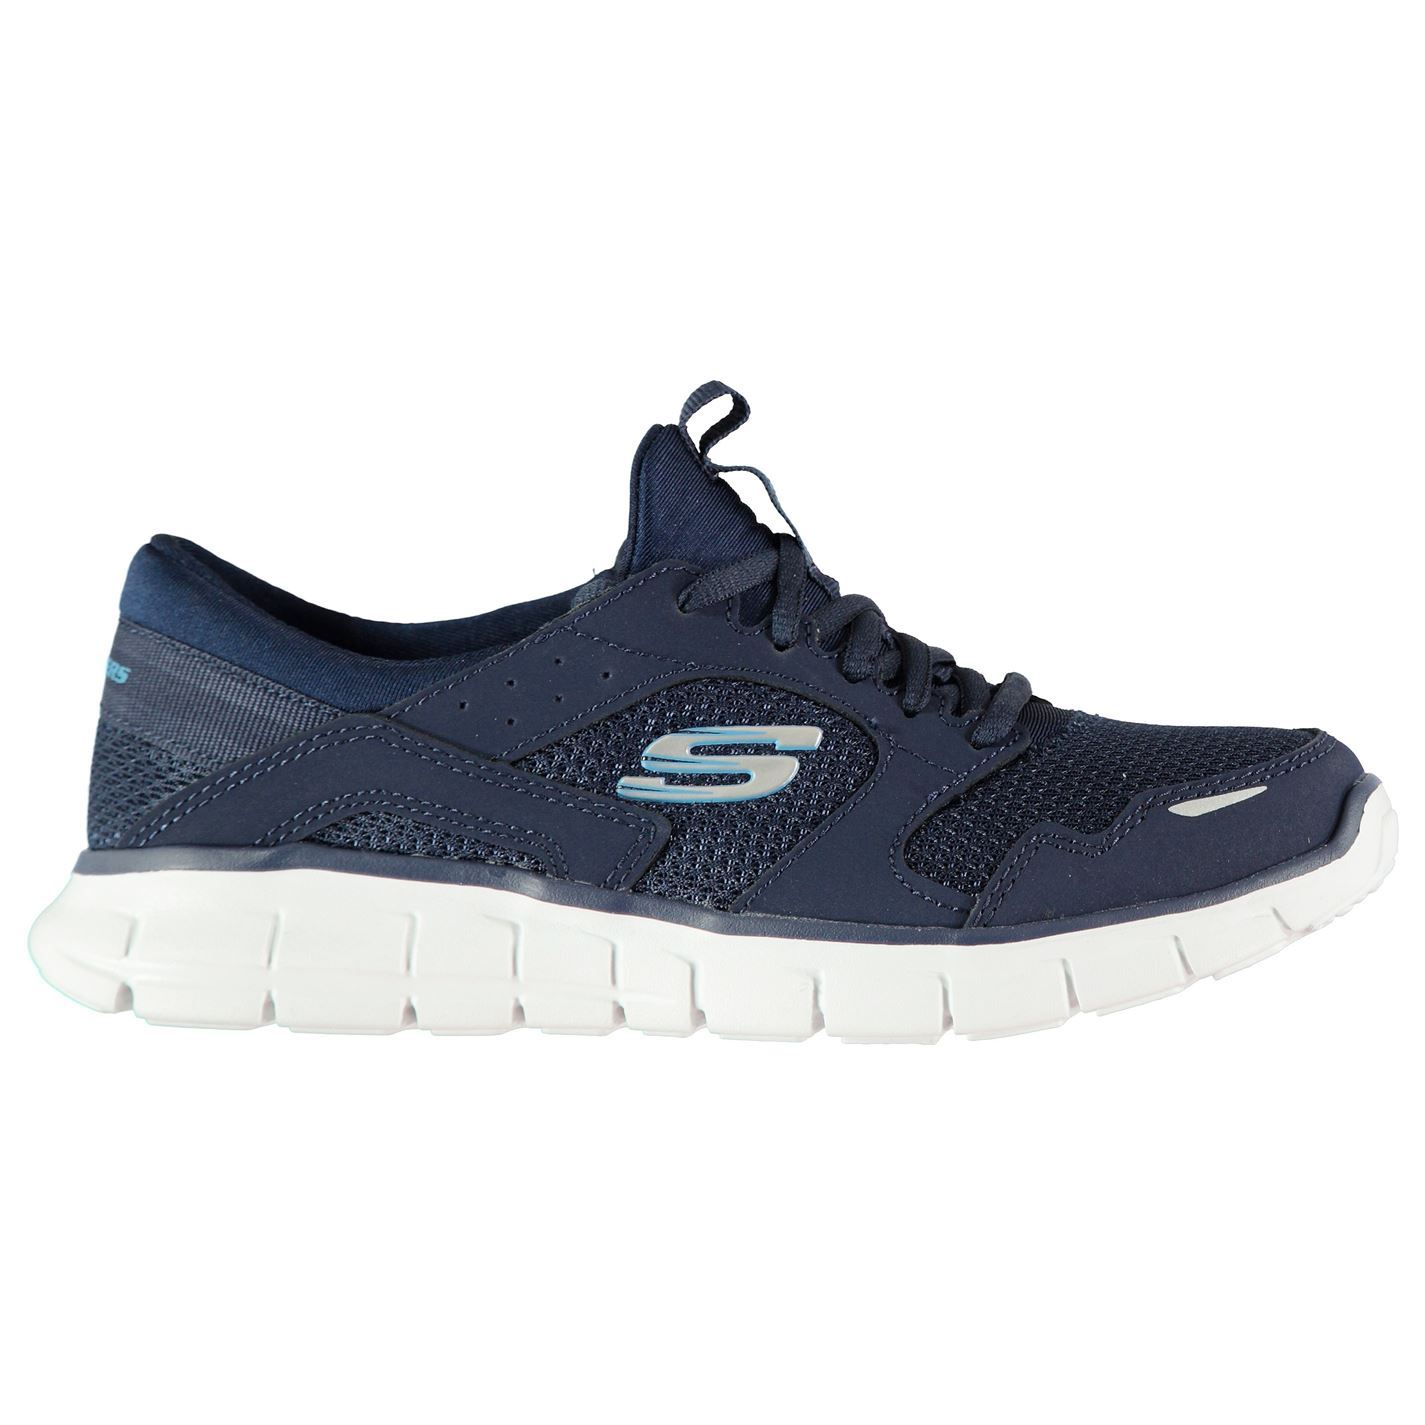 Skechers Womens Flex Runner Trainers Runners Lace Up Breathable Mesh Panels